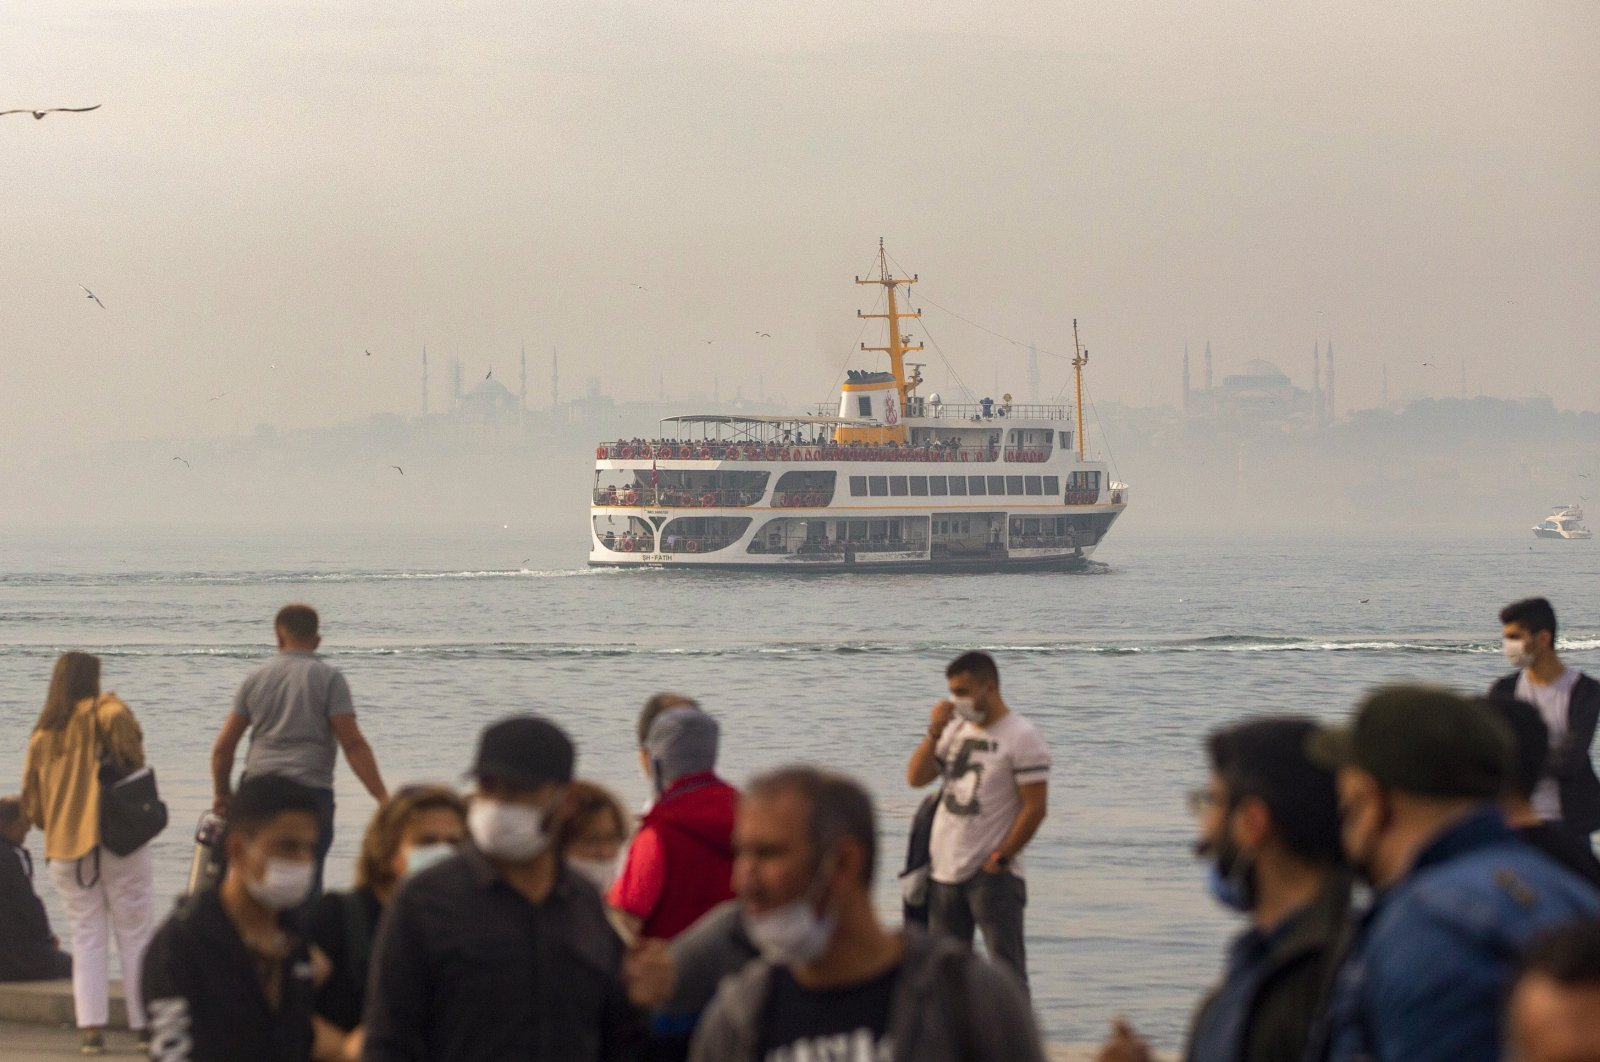 A ferry sails on the Bosphorus in front of the Hagia Sophia Grand Mosque and the Blue Mosque on a foggy day in Istanbul, Turkey, Oct. 25, 2020. (EPA Photo)